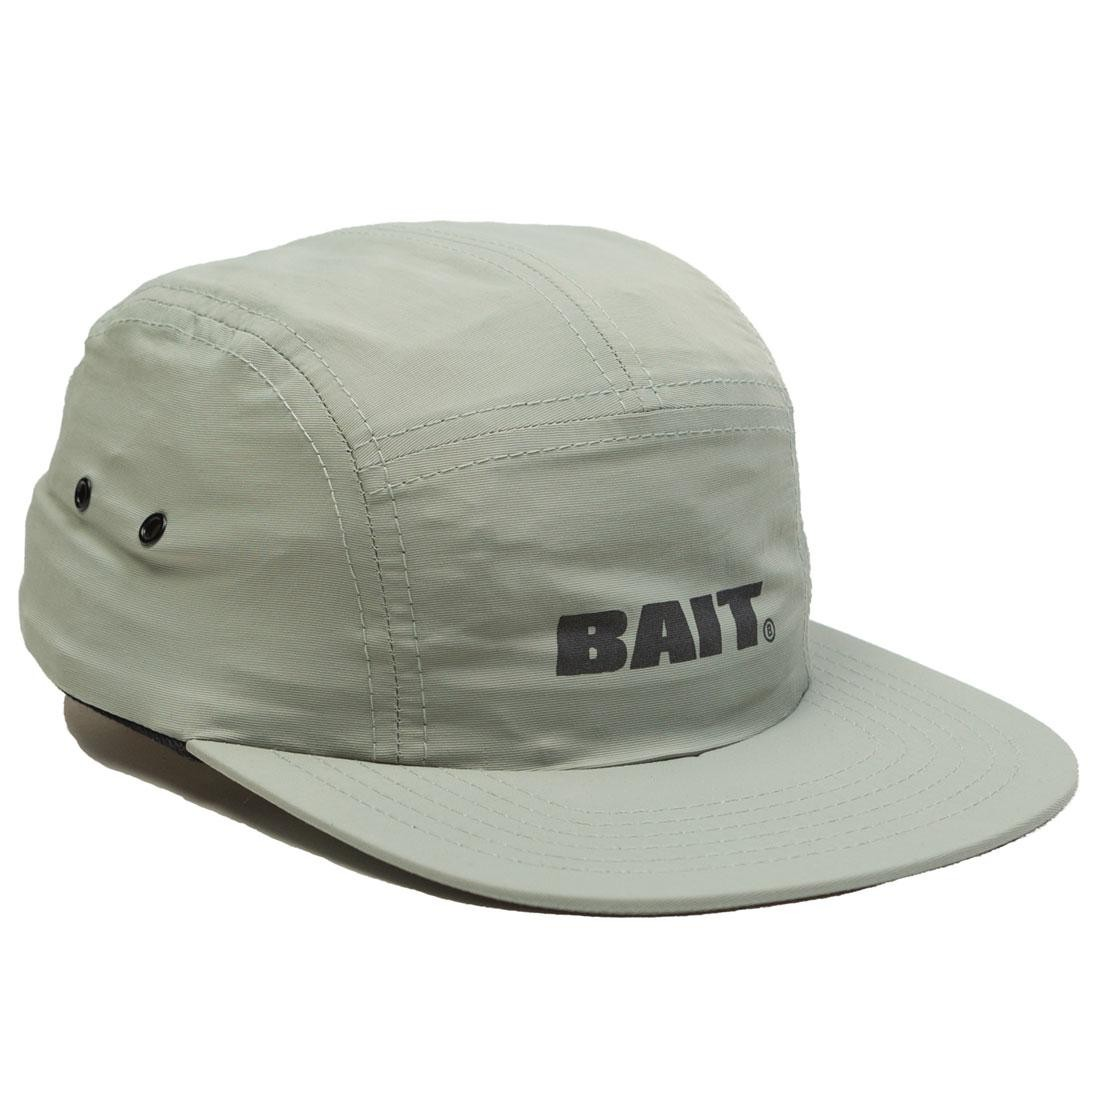 BAIT Big BAIT Camper Hat (gray)